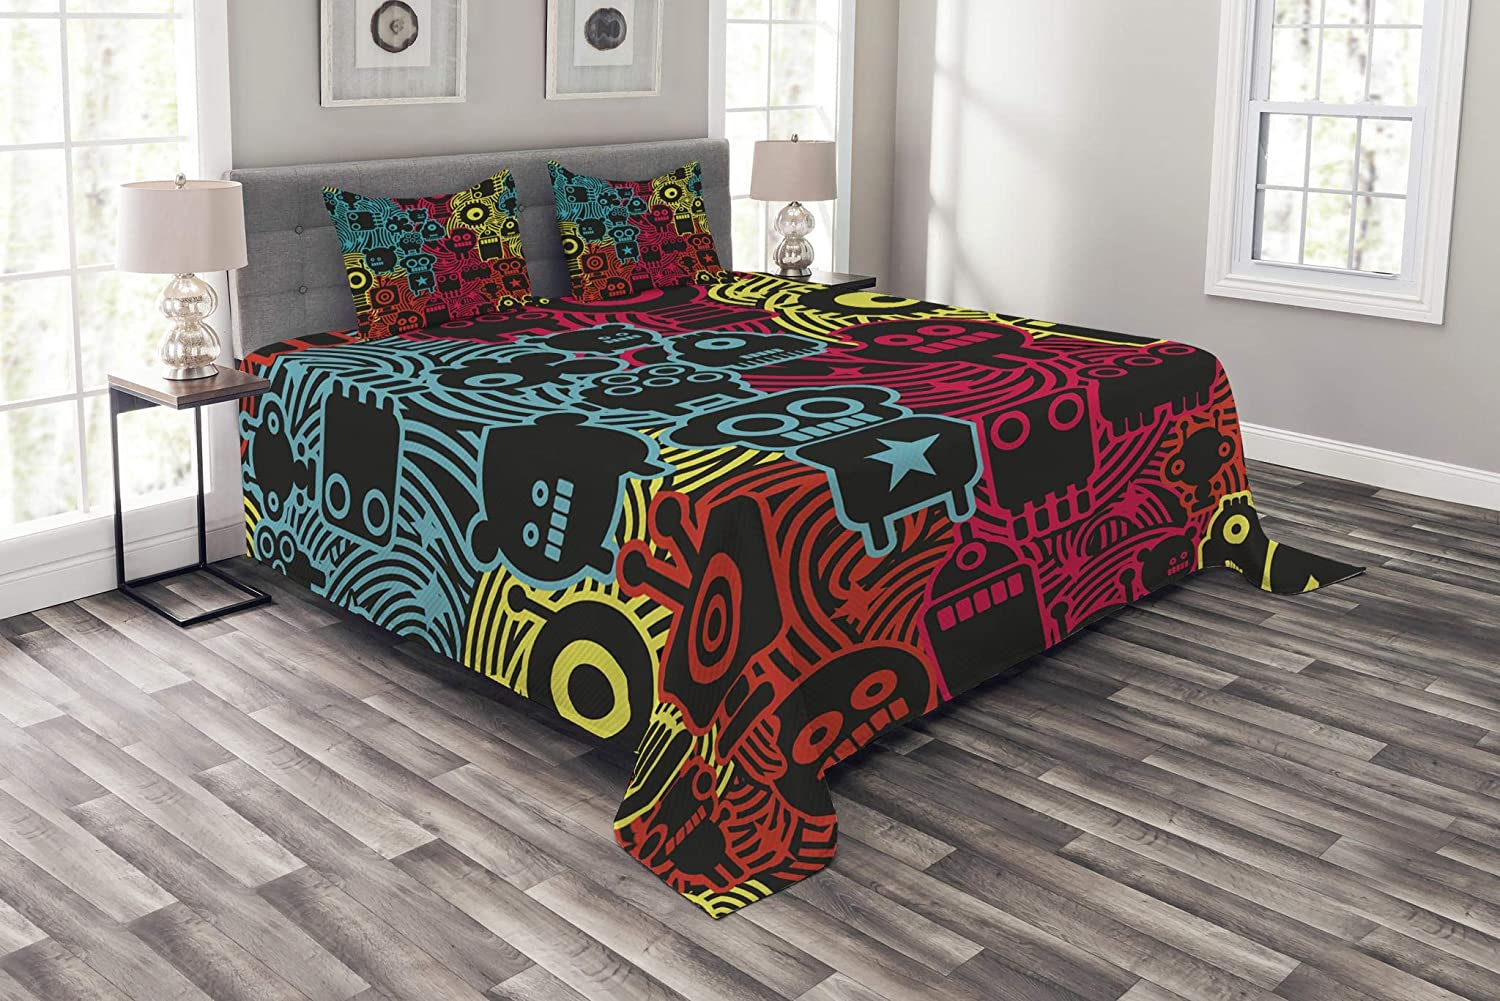 Lunarable Modern Bedspread, Digital Monsters and Robots Animals Futuristic Kids Caricature Illustration, Decorative Quilted 3 Piece Coverlet Set with 2 Pillow Shams, Queen Size, Multicolor